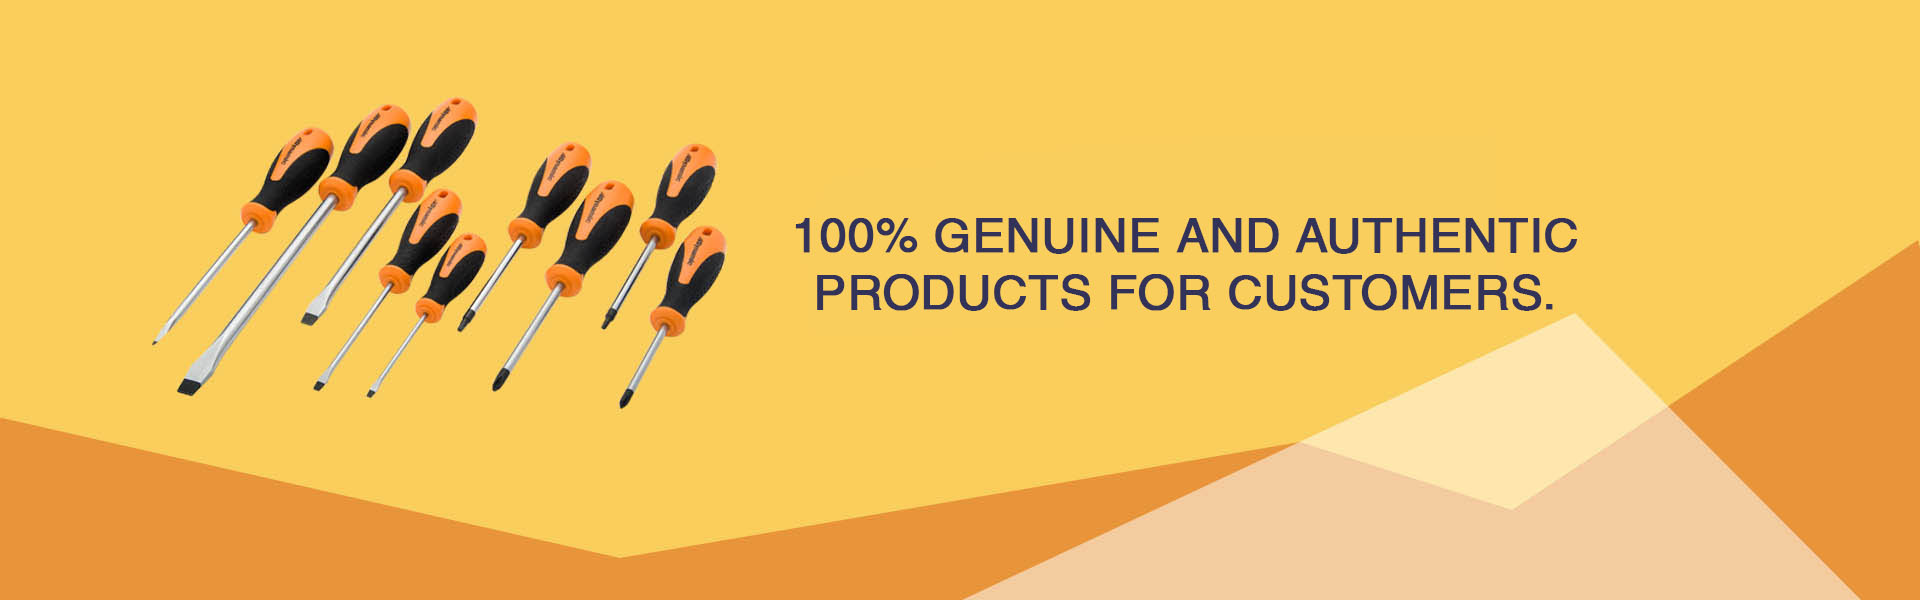 100% Genuine and Authentic Products for customers